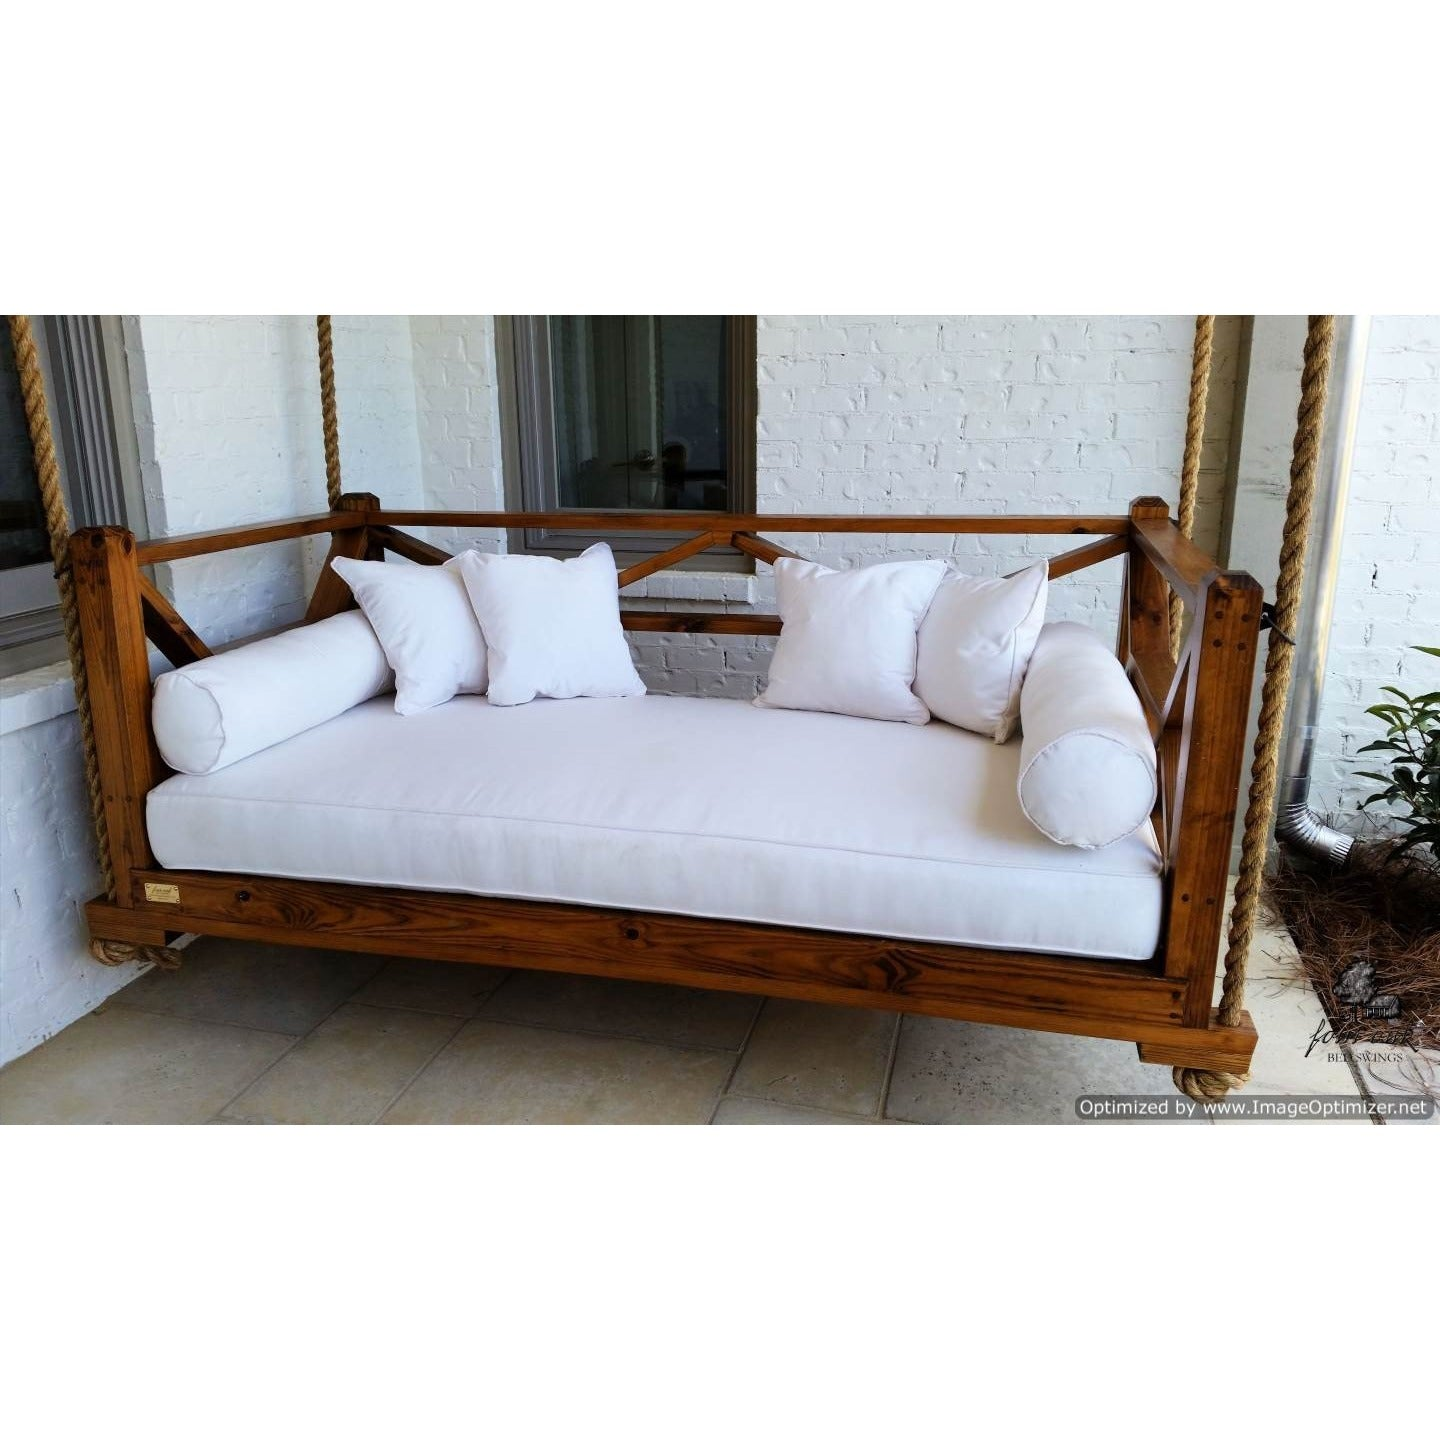 Buy Seaside Bed Swing Online Porch Patio Hanging Bed Swing For Sale